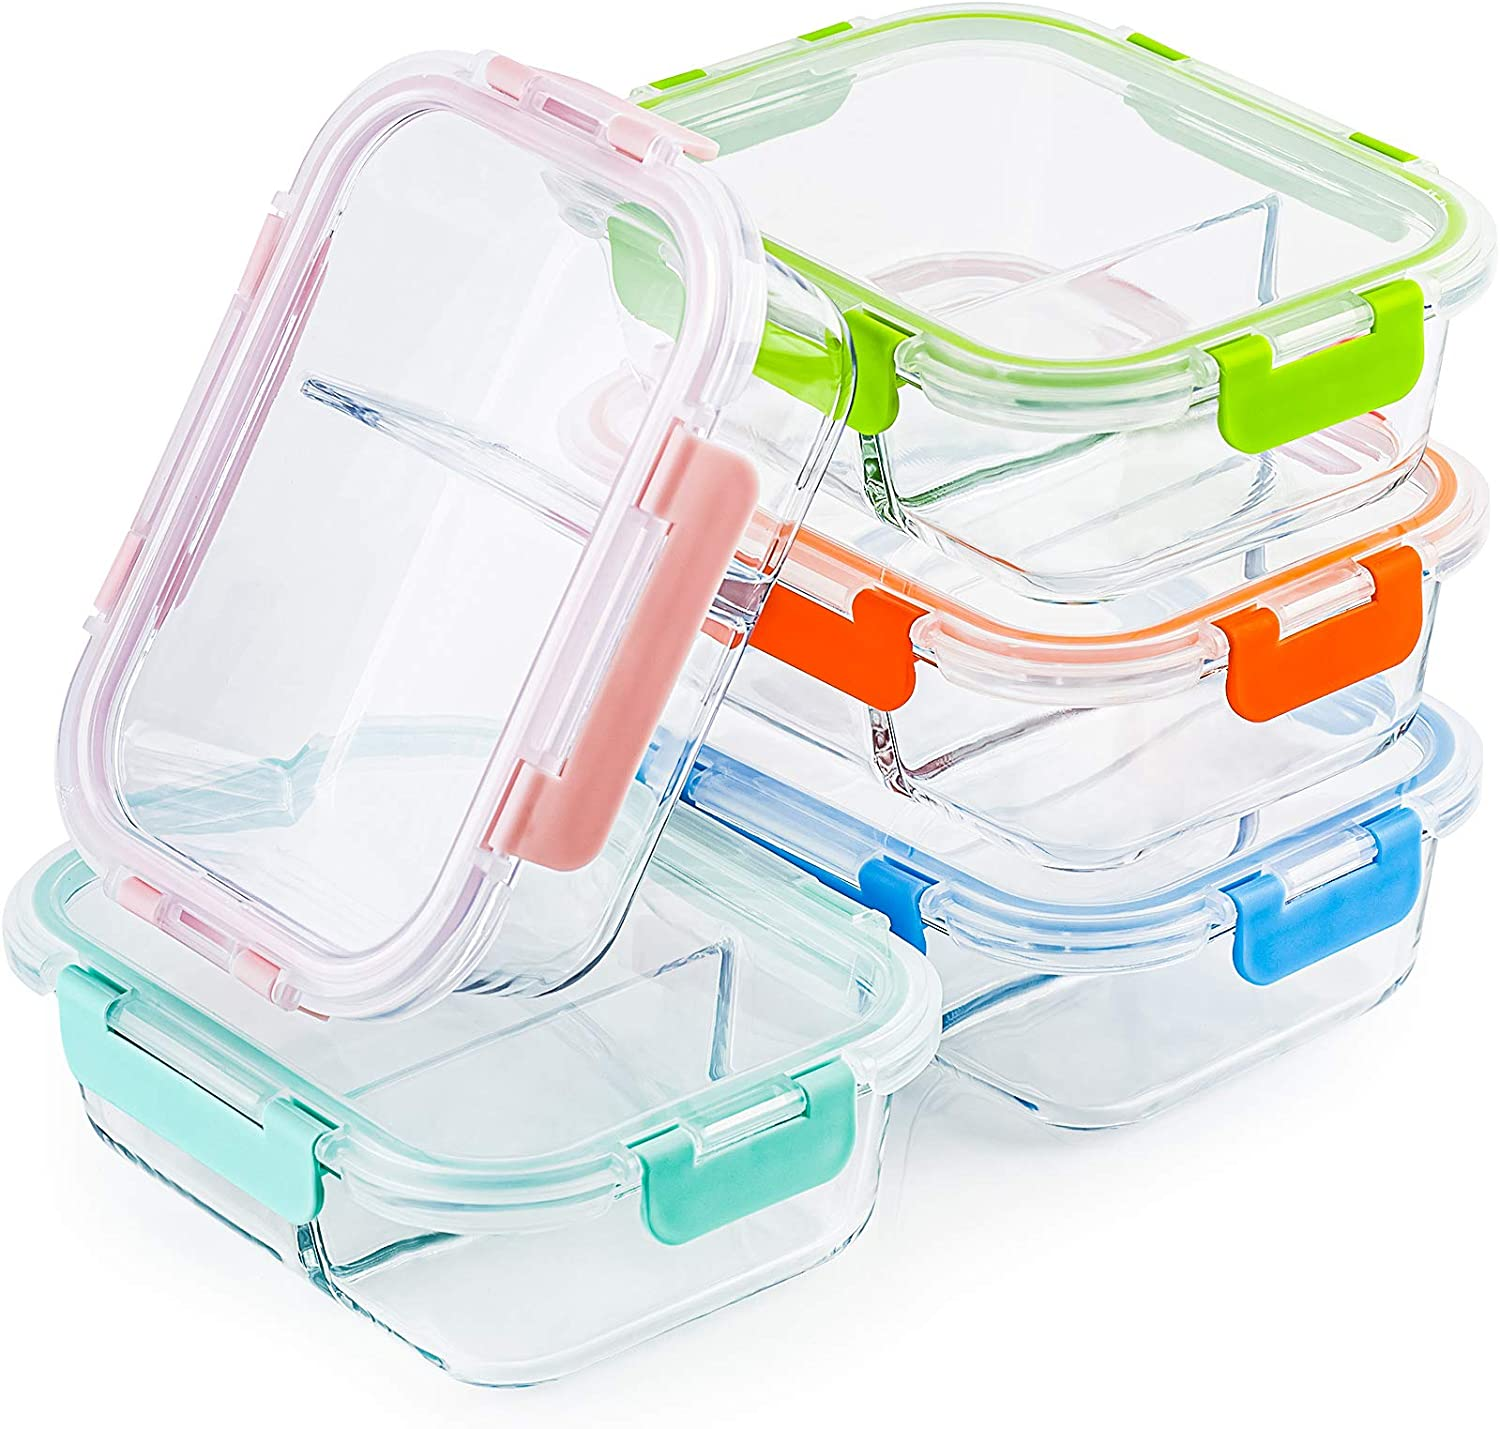 Glass Meal Prep Containers 2 Compartment Set, 5-Pack, 34oz, Glass Bento Boxes for Adults, Divided Glass Lunch Containers with Lids